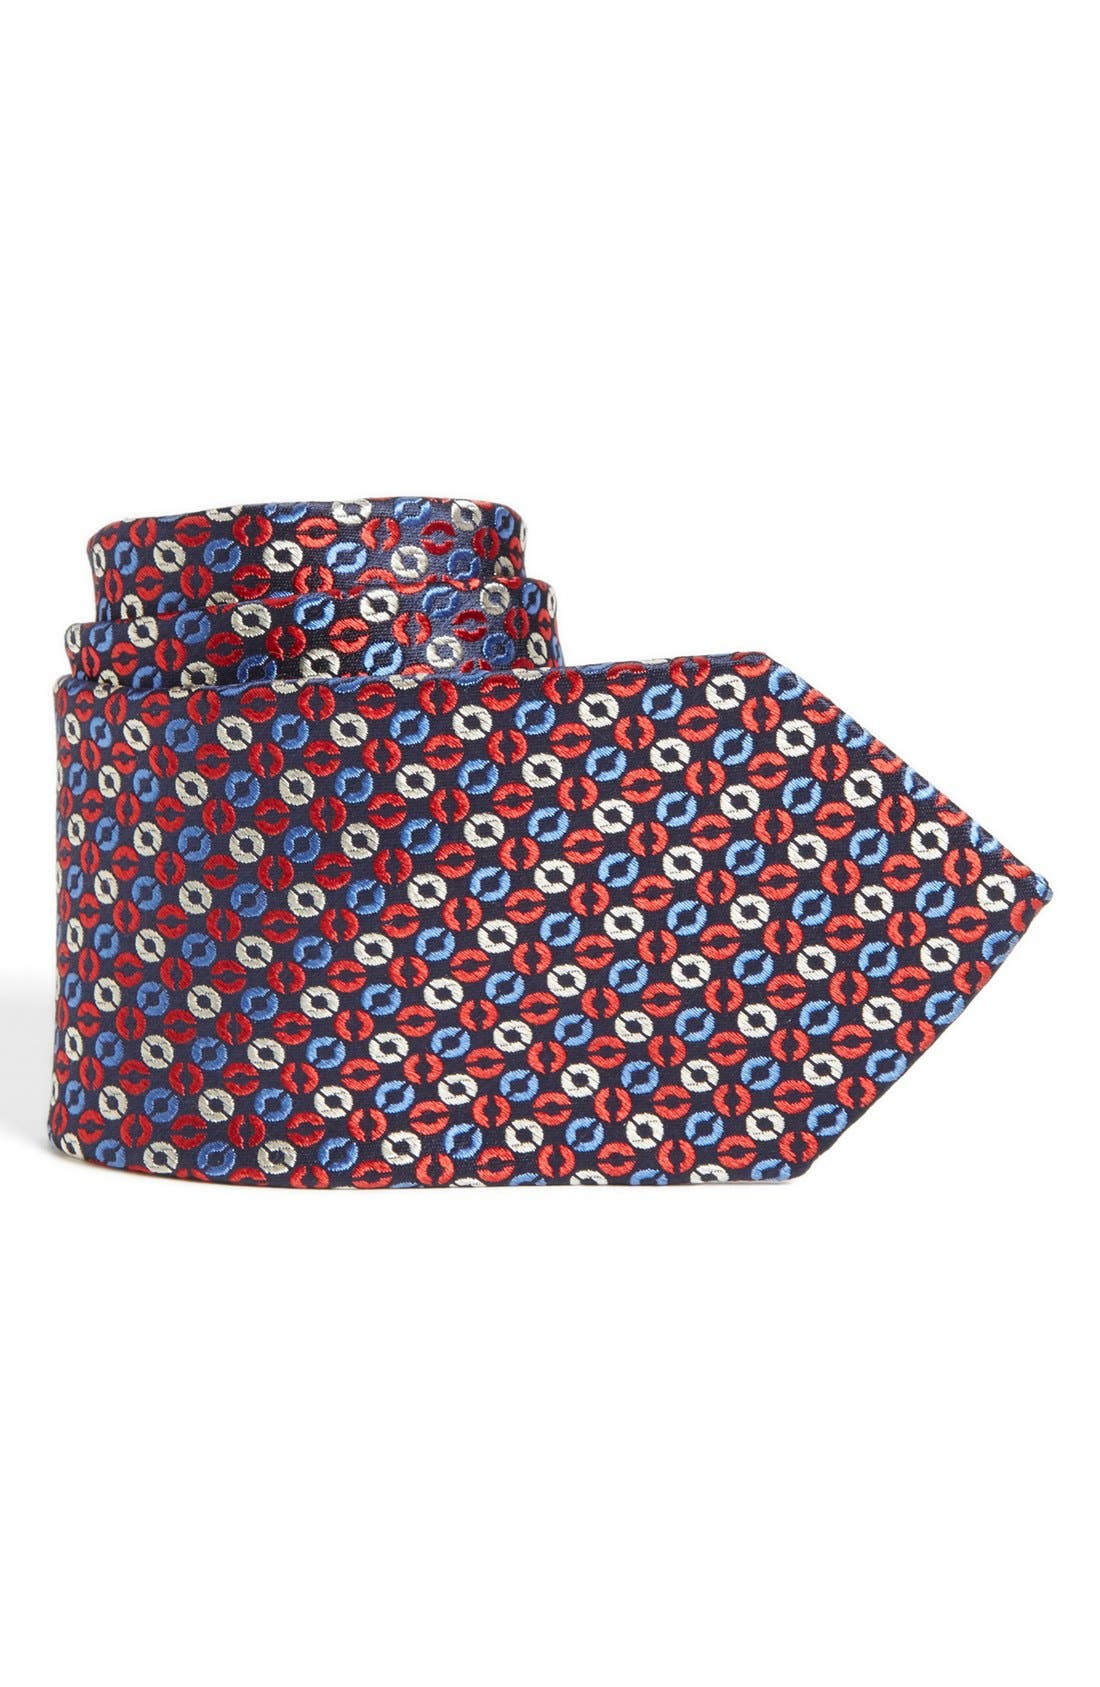 Alternate Image 1 Selected - Joseph Abboud Circle Pattern Woven Silk Tie (Boys)